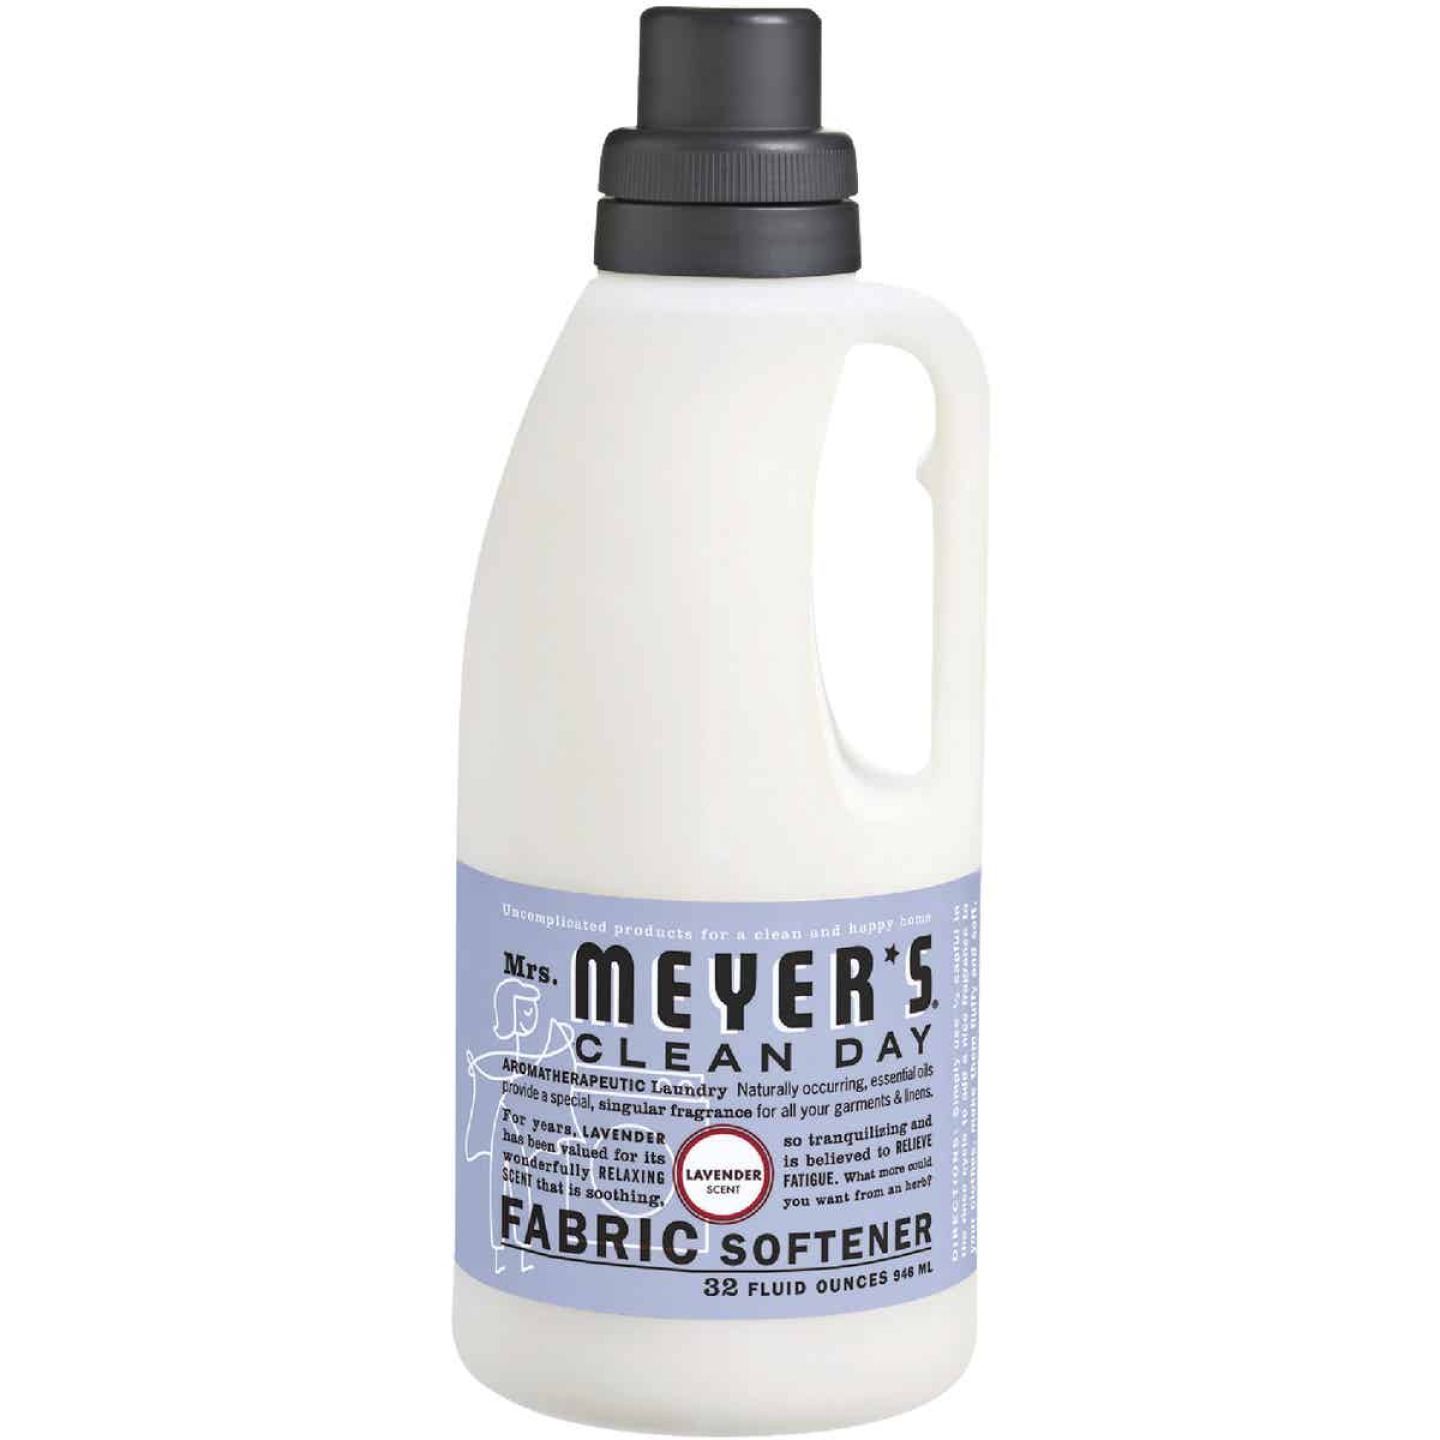 Mrs. Meyer's Clean Day 32 Oz. Lavender Fabric Softener Image 1